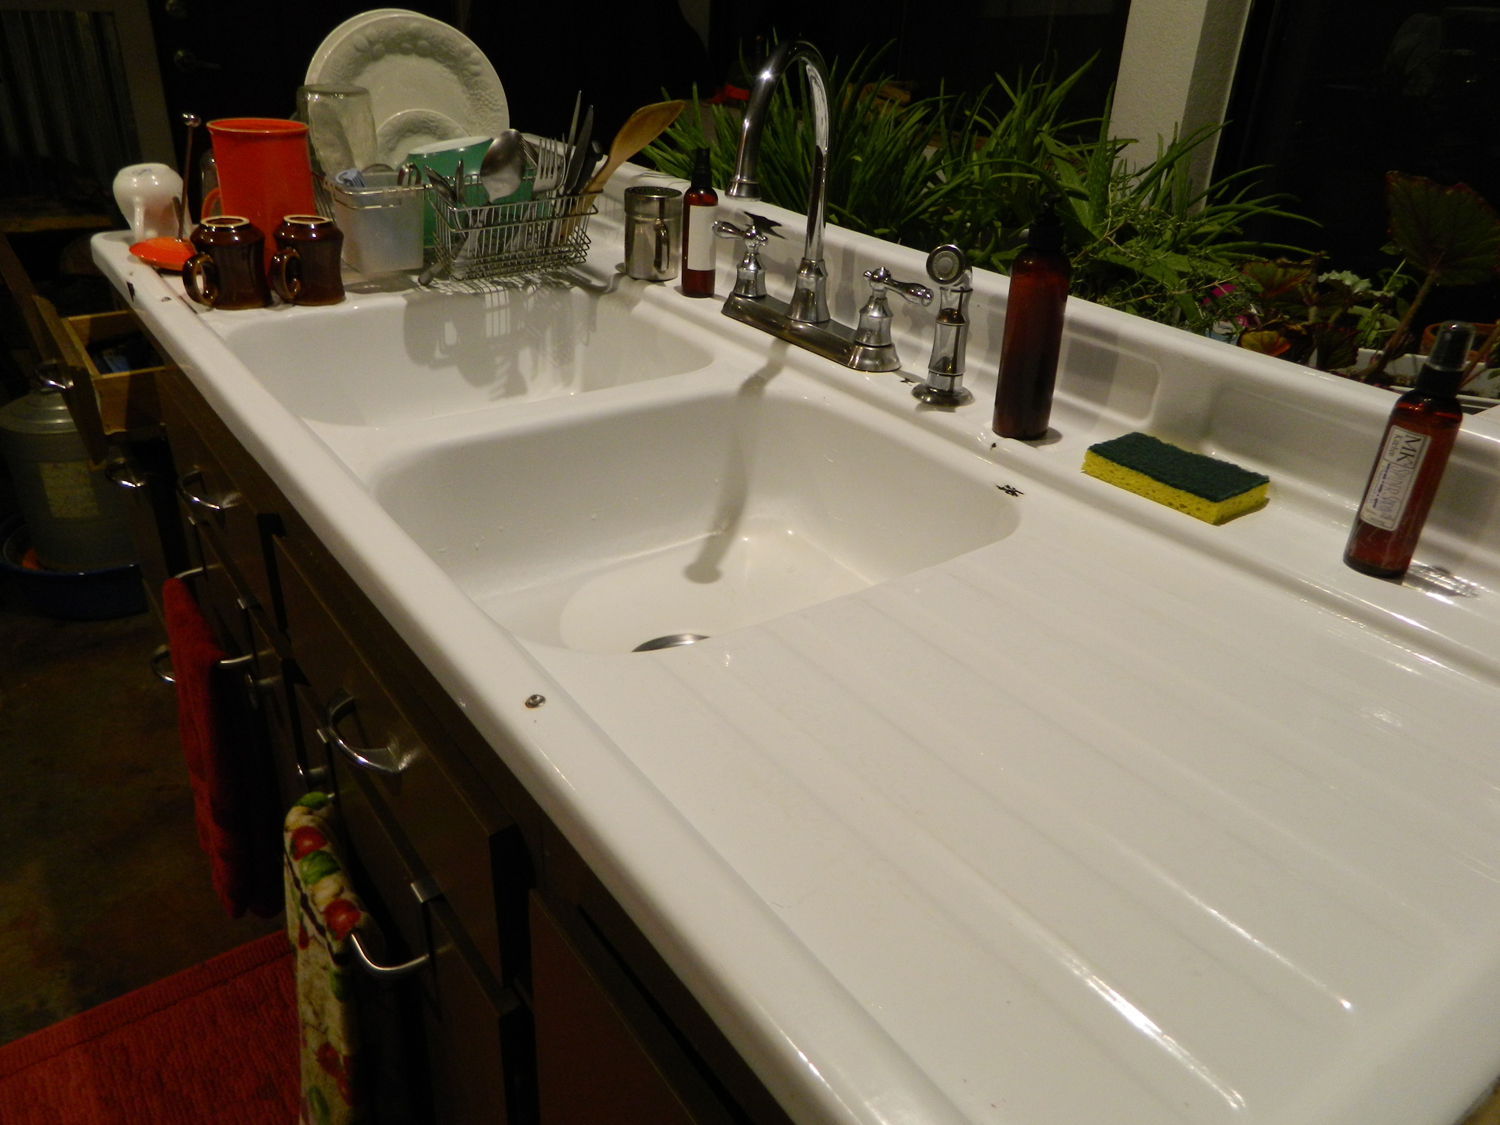 Drainboard Kitchen Sinks I love my kitchen sink paupers candles is living a sustainable dream our 1940s farmhouse double drain board double sink workwithnaturefo